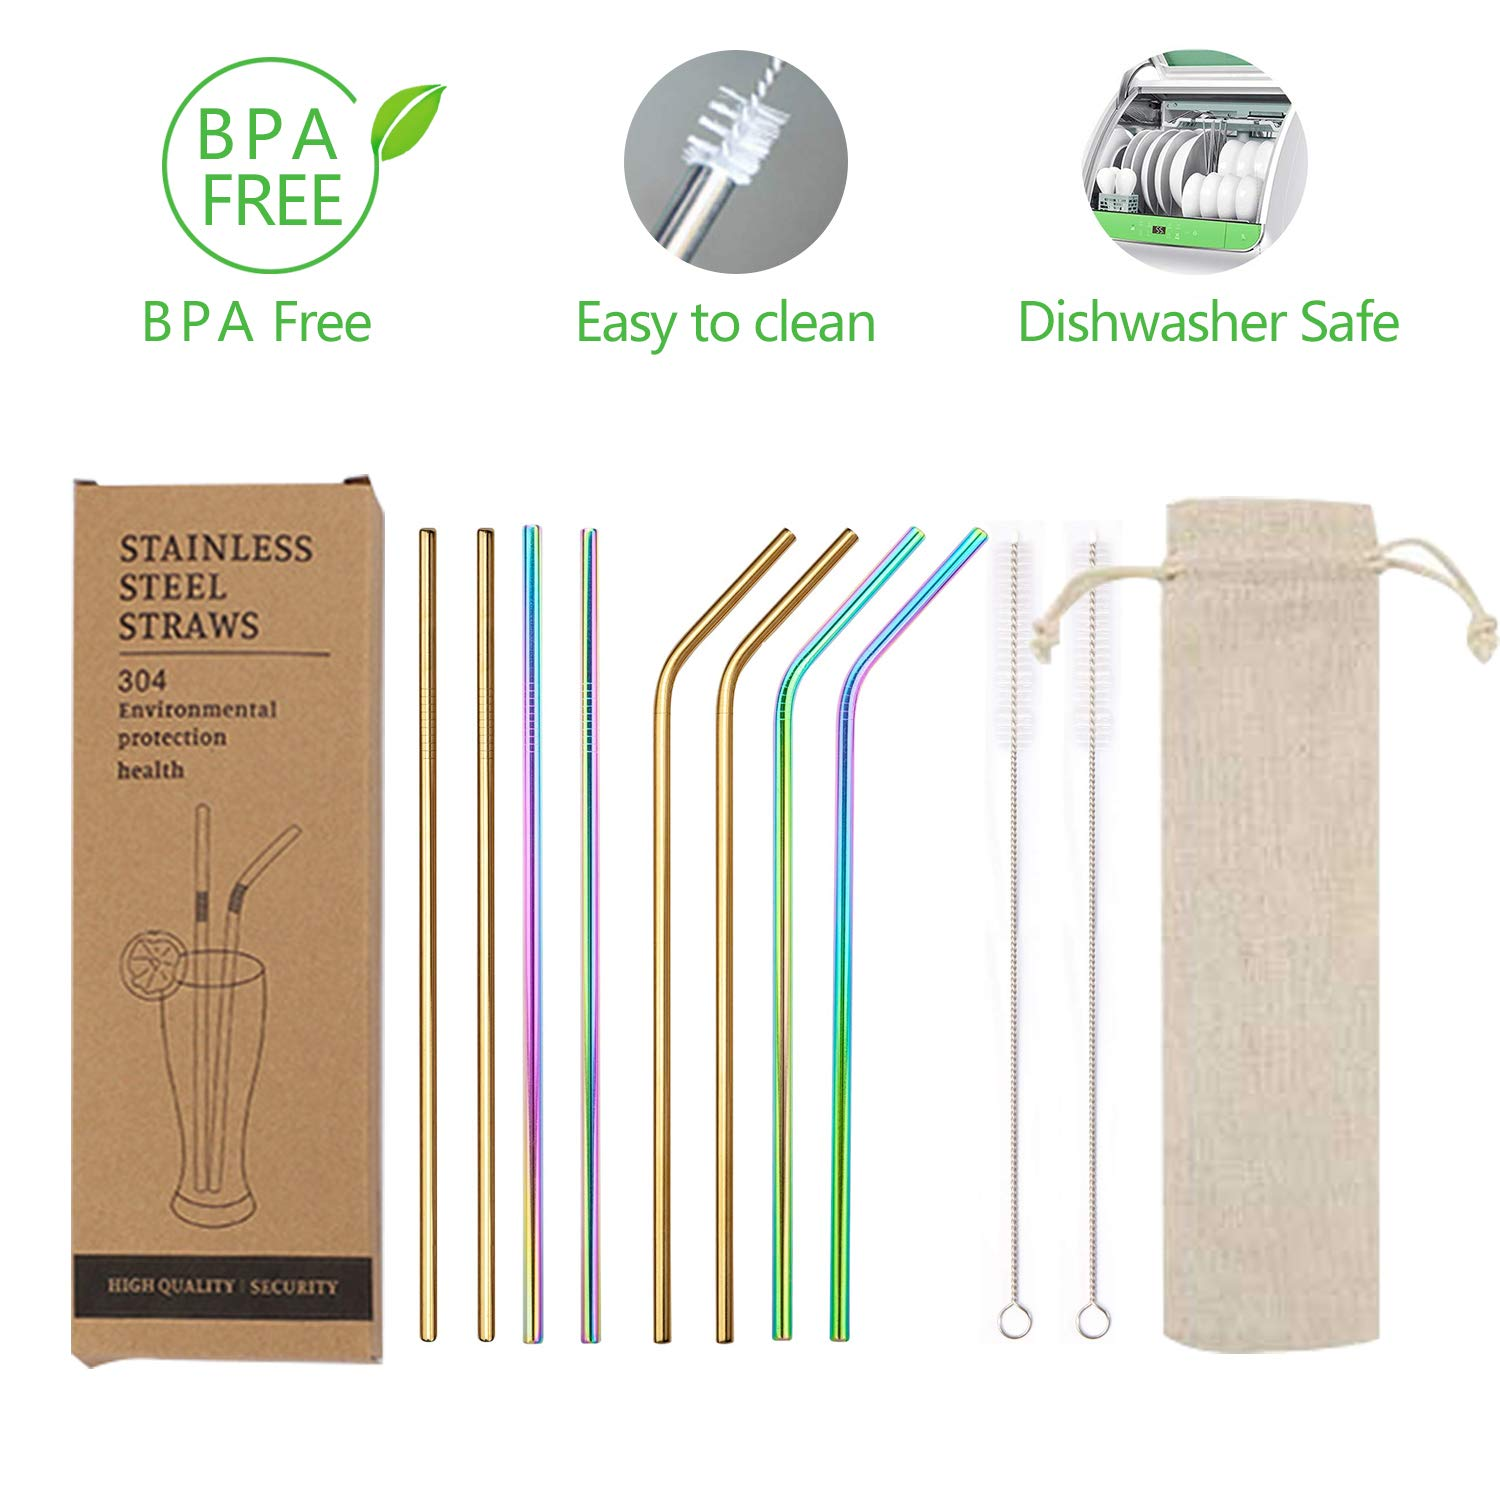 Eco Friendly Stainless Steel Drinking Straws-Premium Reusable Metal Straw 8.5 for 20-30 Oz Tumblers 4 Curved Silver Dishwasher Safe- BPA Free 4 Straight 2 Cleaning Brushes